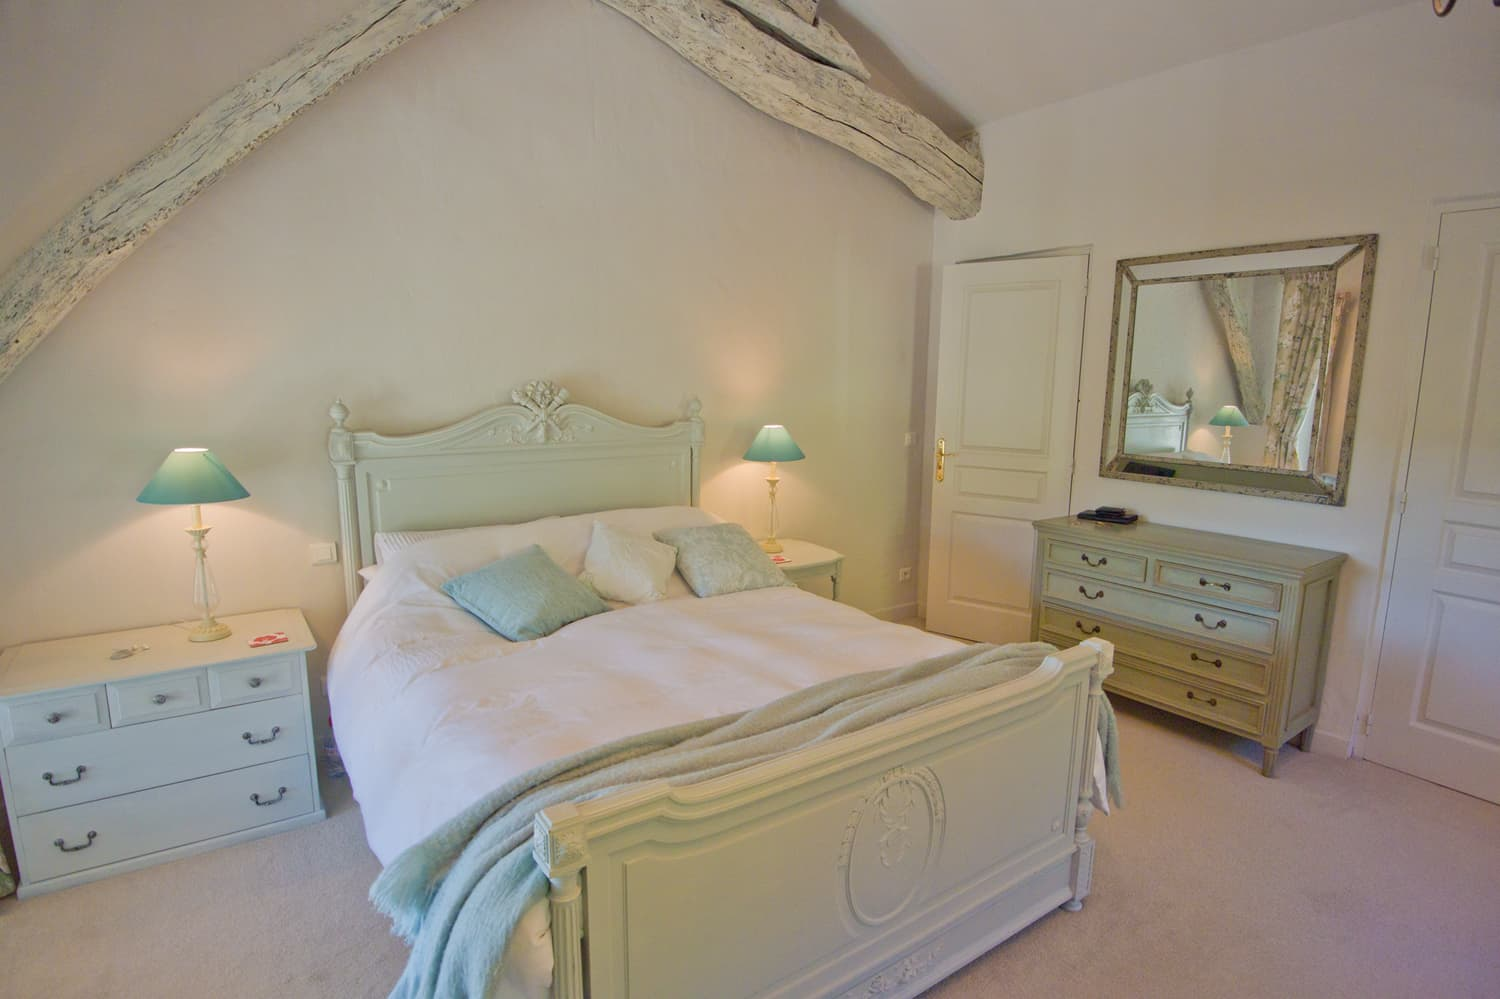 Bedroom in South West France self-catering accommodation